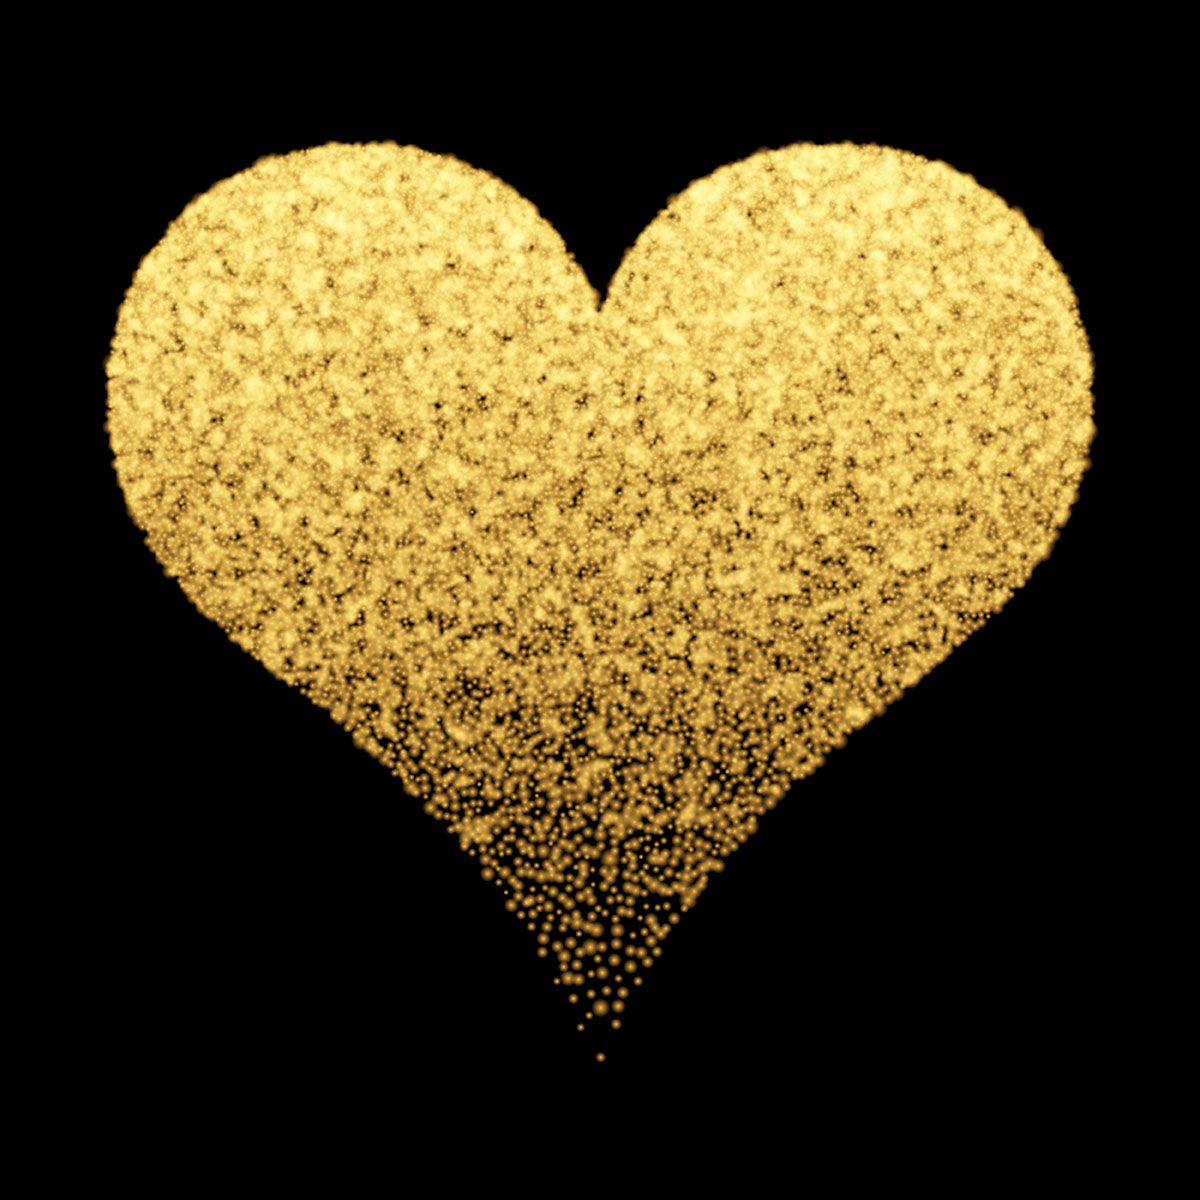 Gold sparkle heart background - Download Free Vectors ...